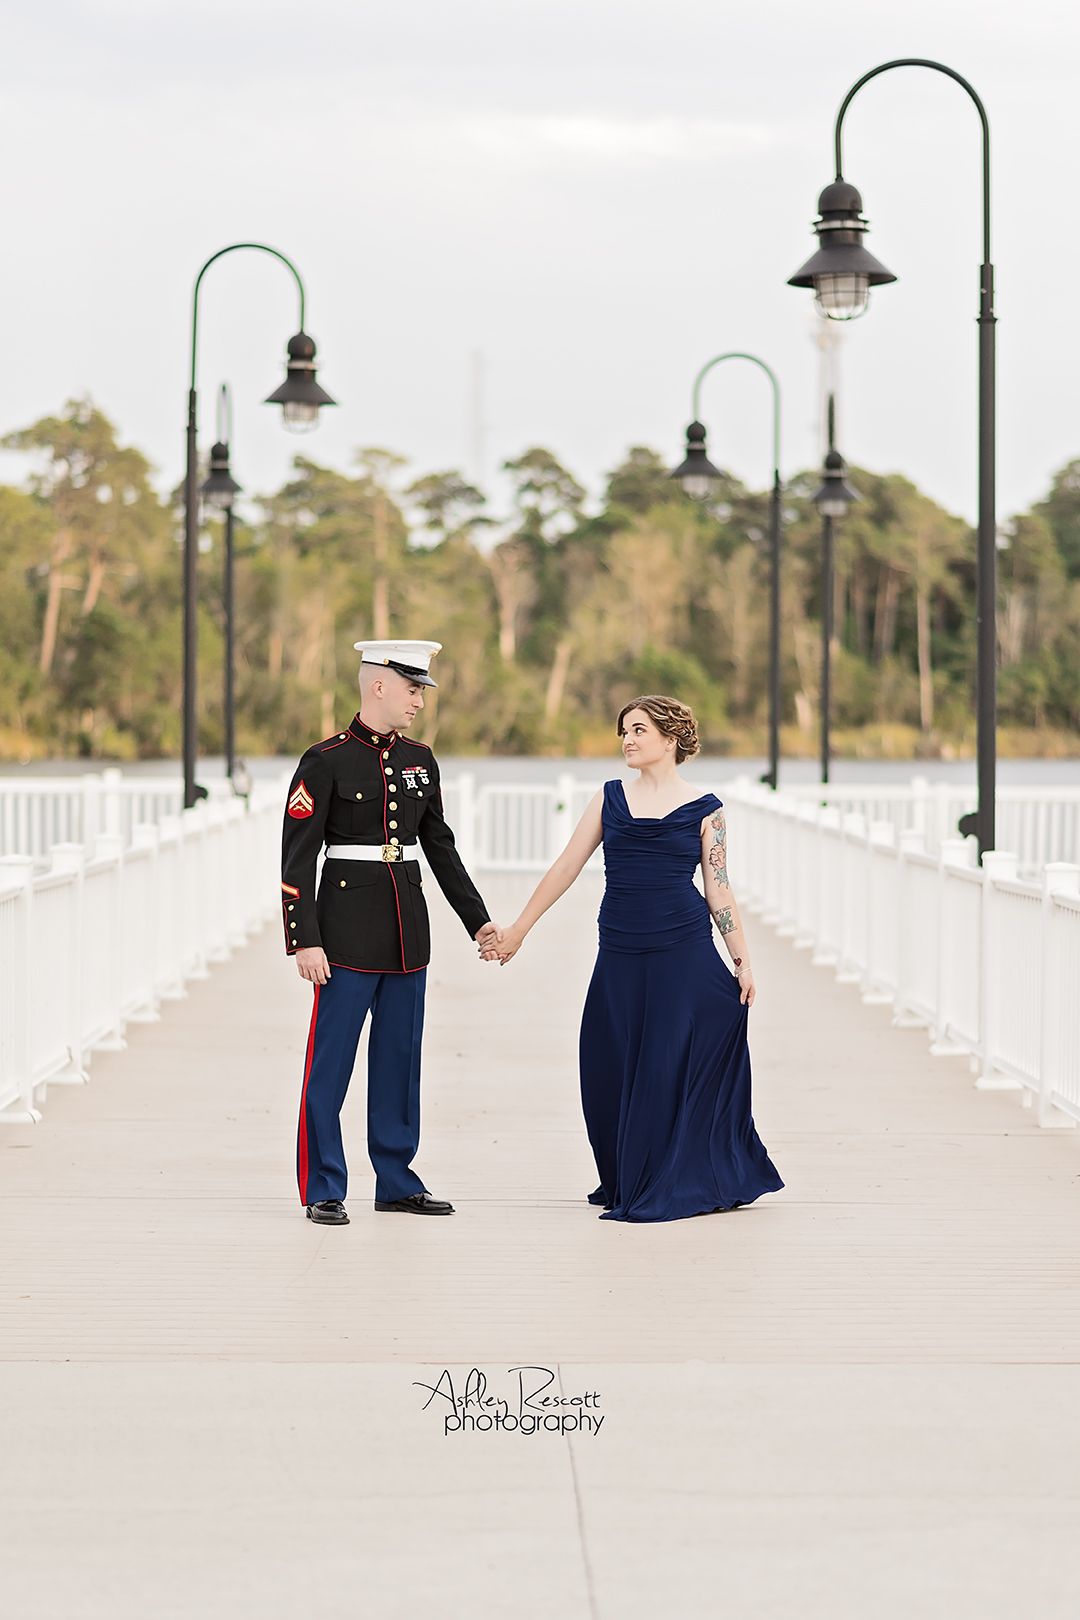 military couple dressed for ball